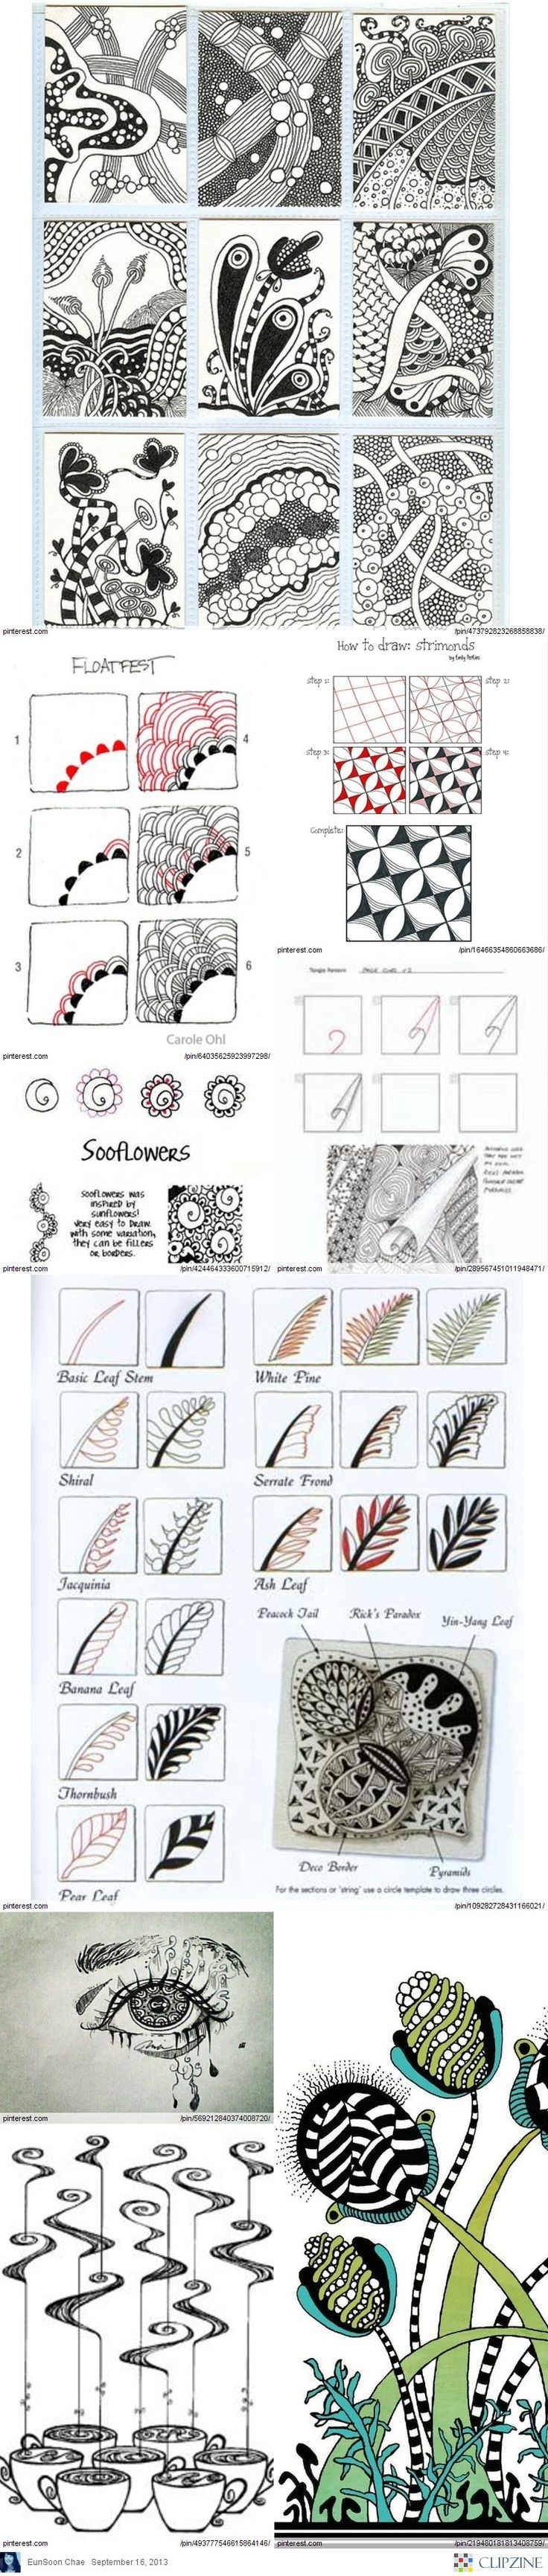 Zentangle patterns and ideas - Zentangle - #Zentangle - hand drawn art - zentangle patterns